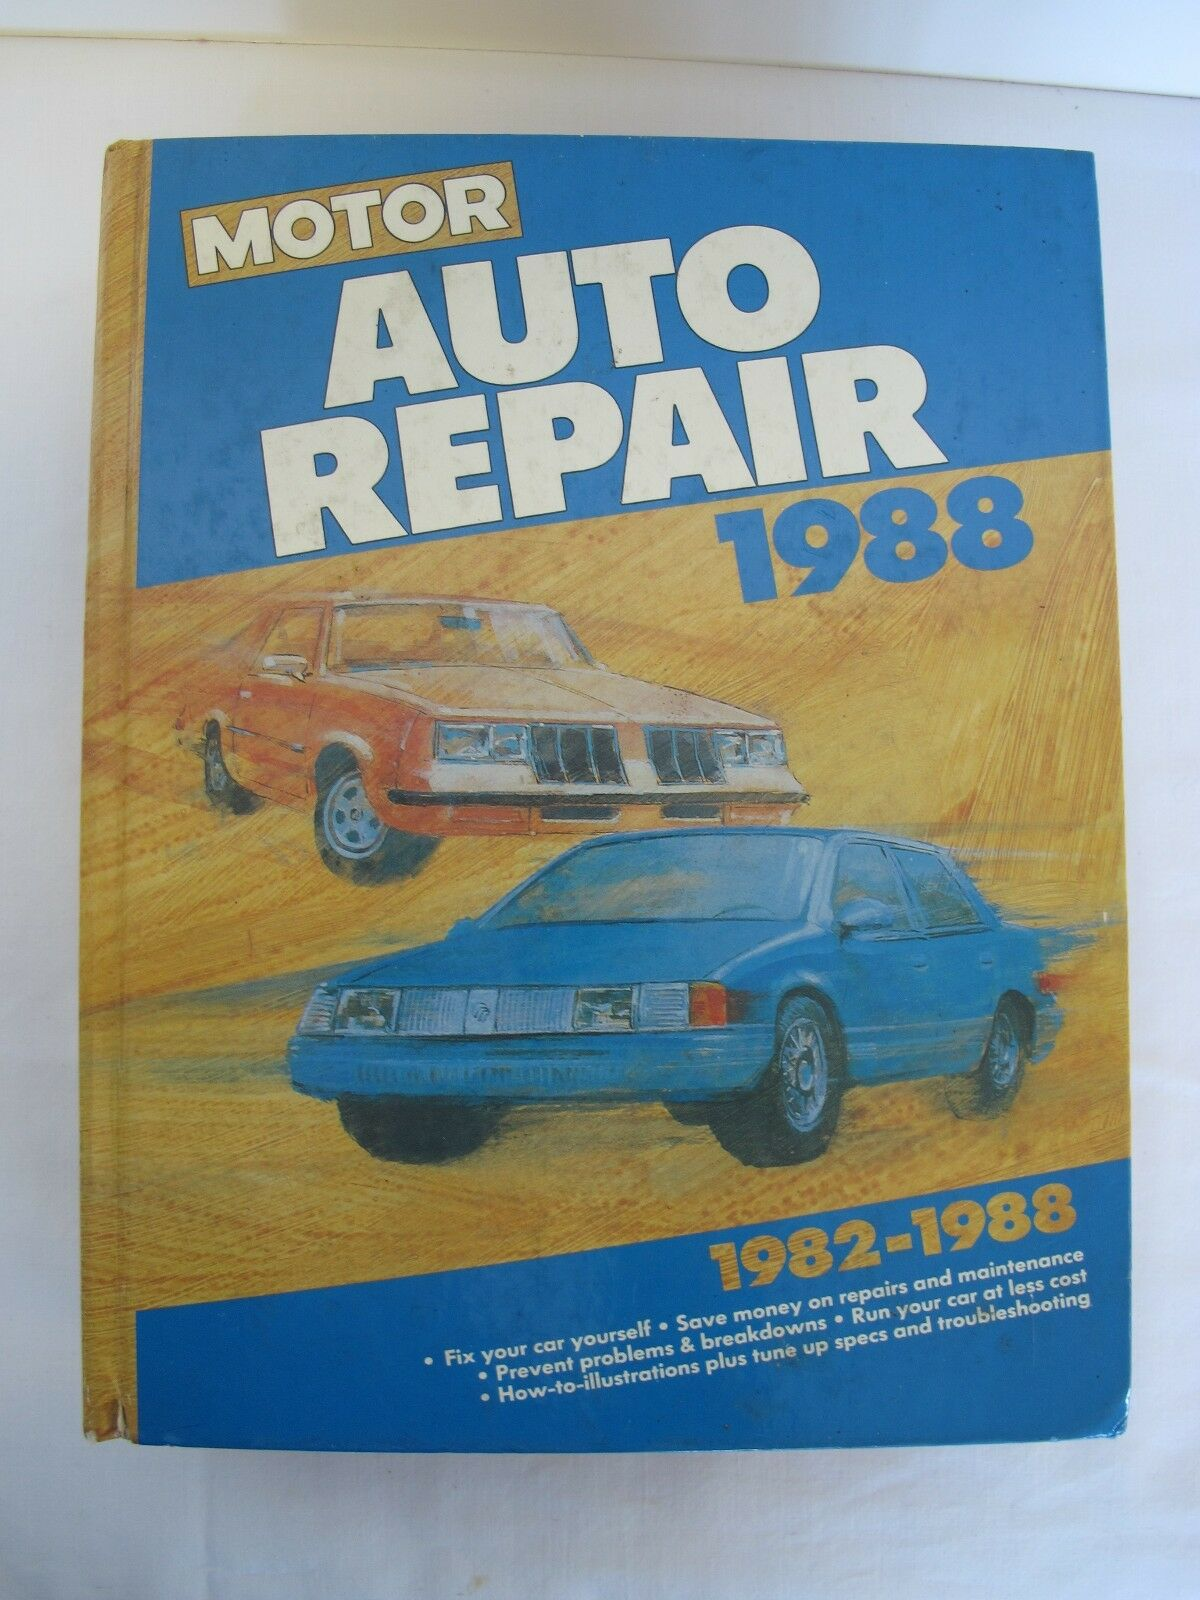 Motor Auto Repair Manual 51st Edition 1982 1988 Automotive 1986 Lincoln Town Car Electrical And Vacuum Troubleshooting Norton Secured Powered By Verisign